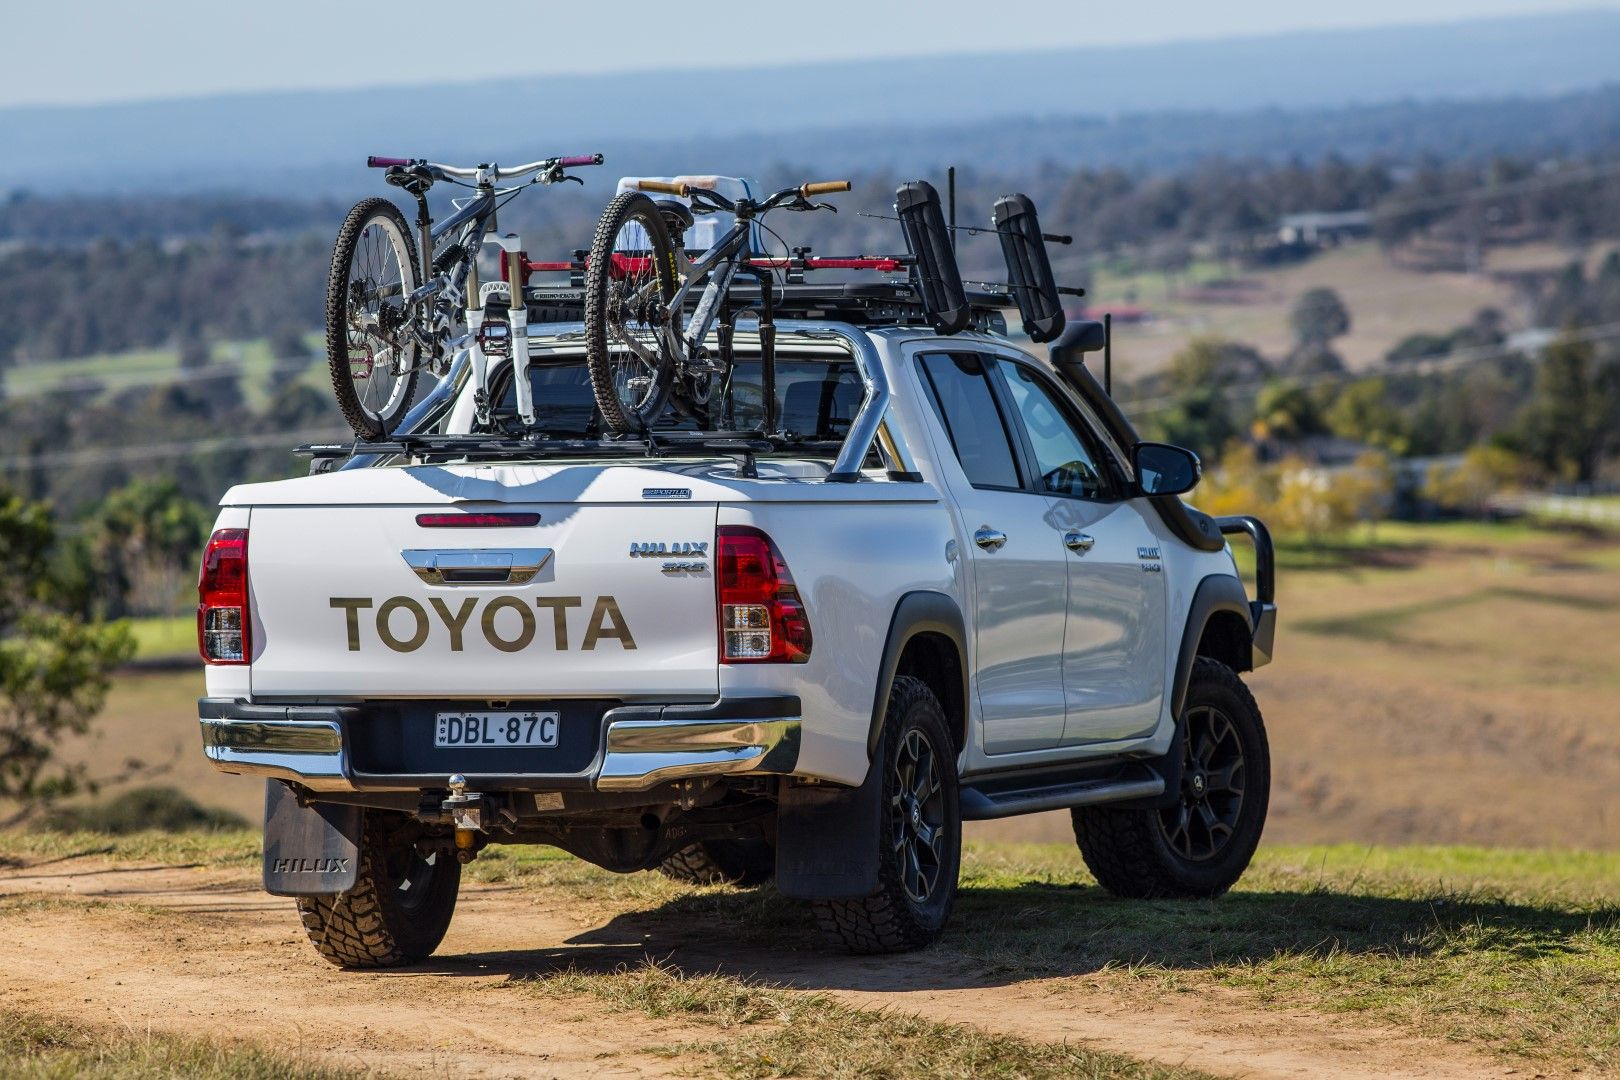 Toyota Hilux Revo With Pro Form Tonneau Cover And Rhino Rack Roof Racks Toyota Hilux Tonneau Cover Toyota